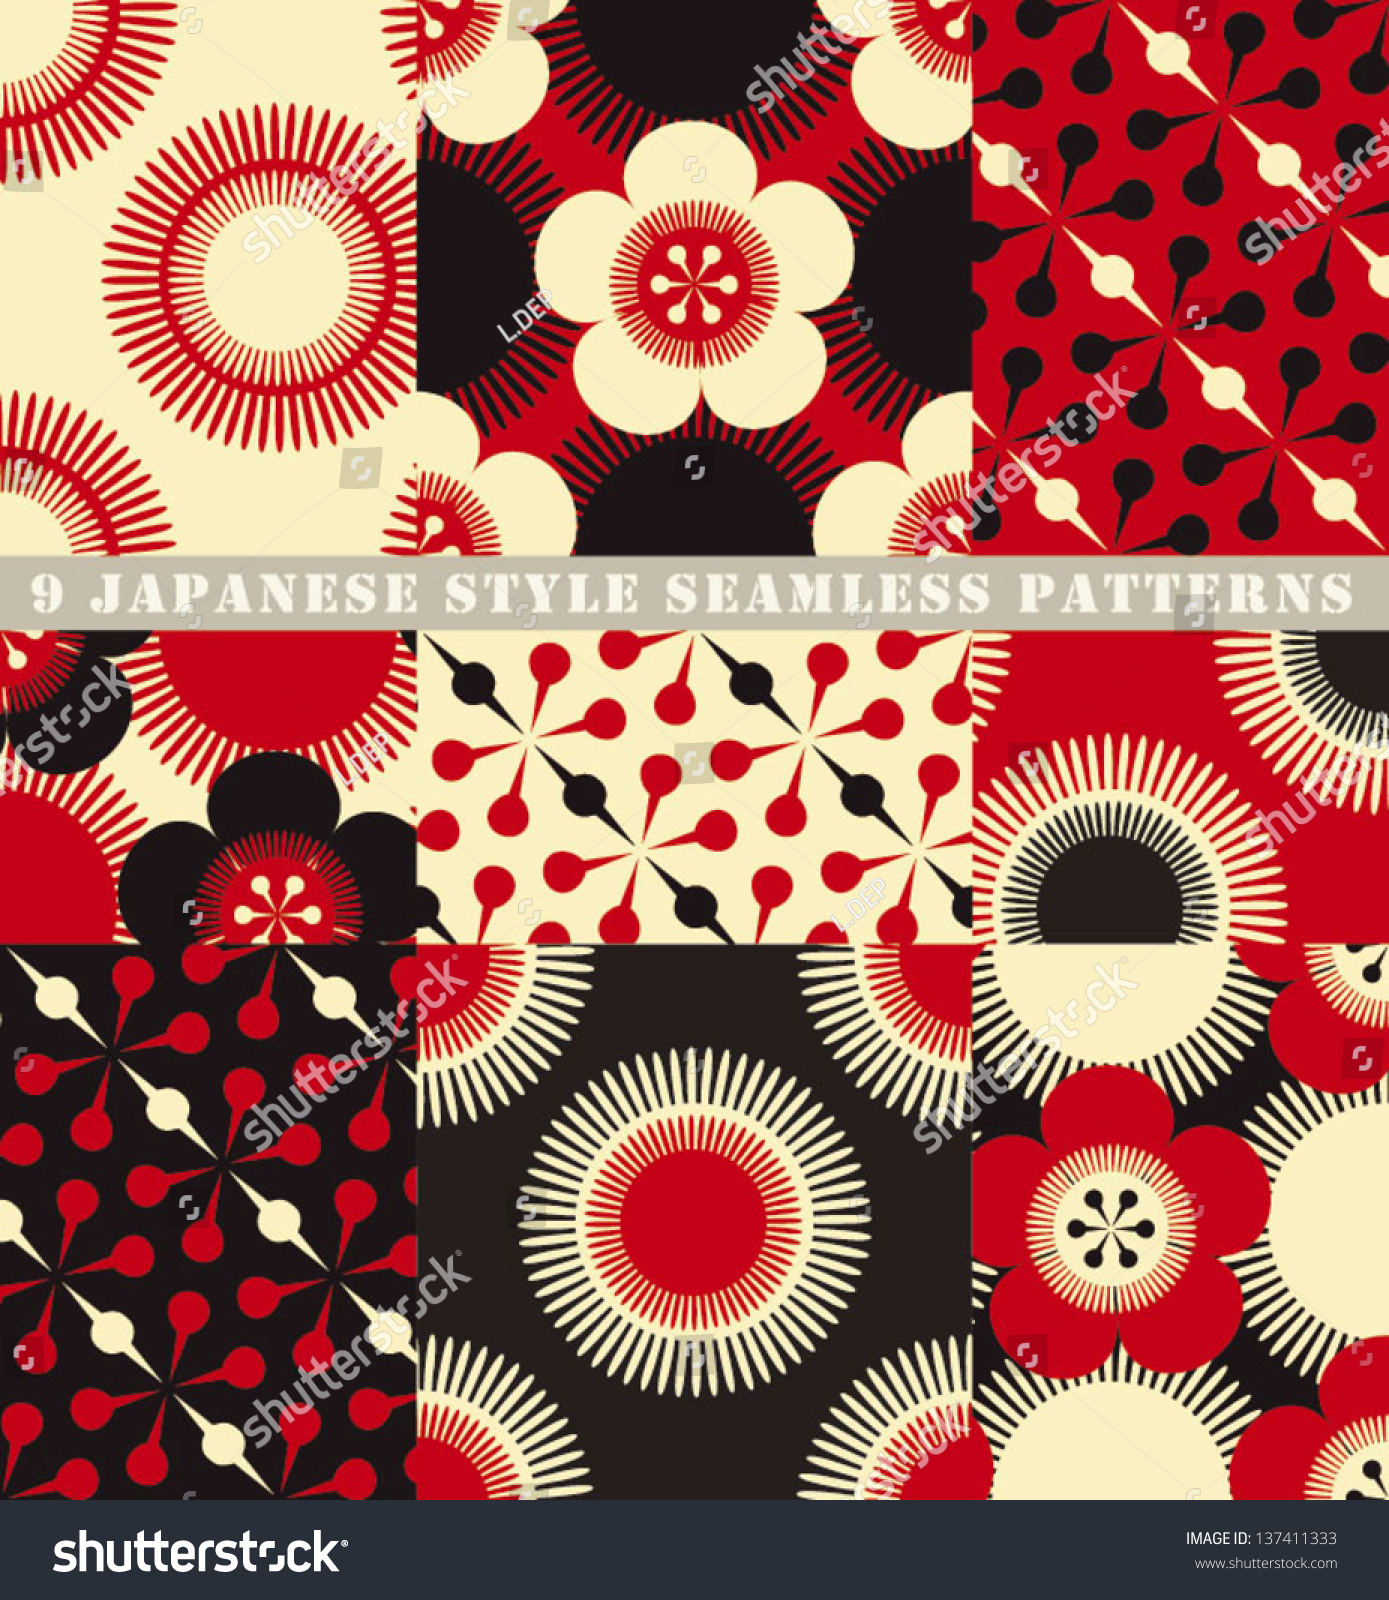 Japanese Style set 9 seamless japanese style floral stock vector 137411333